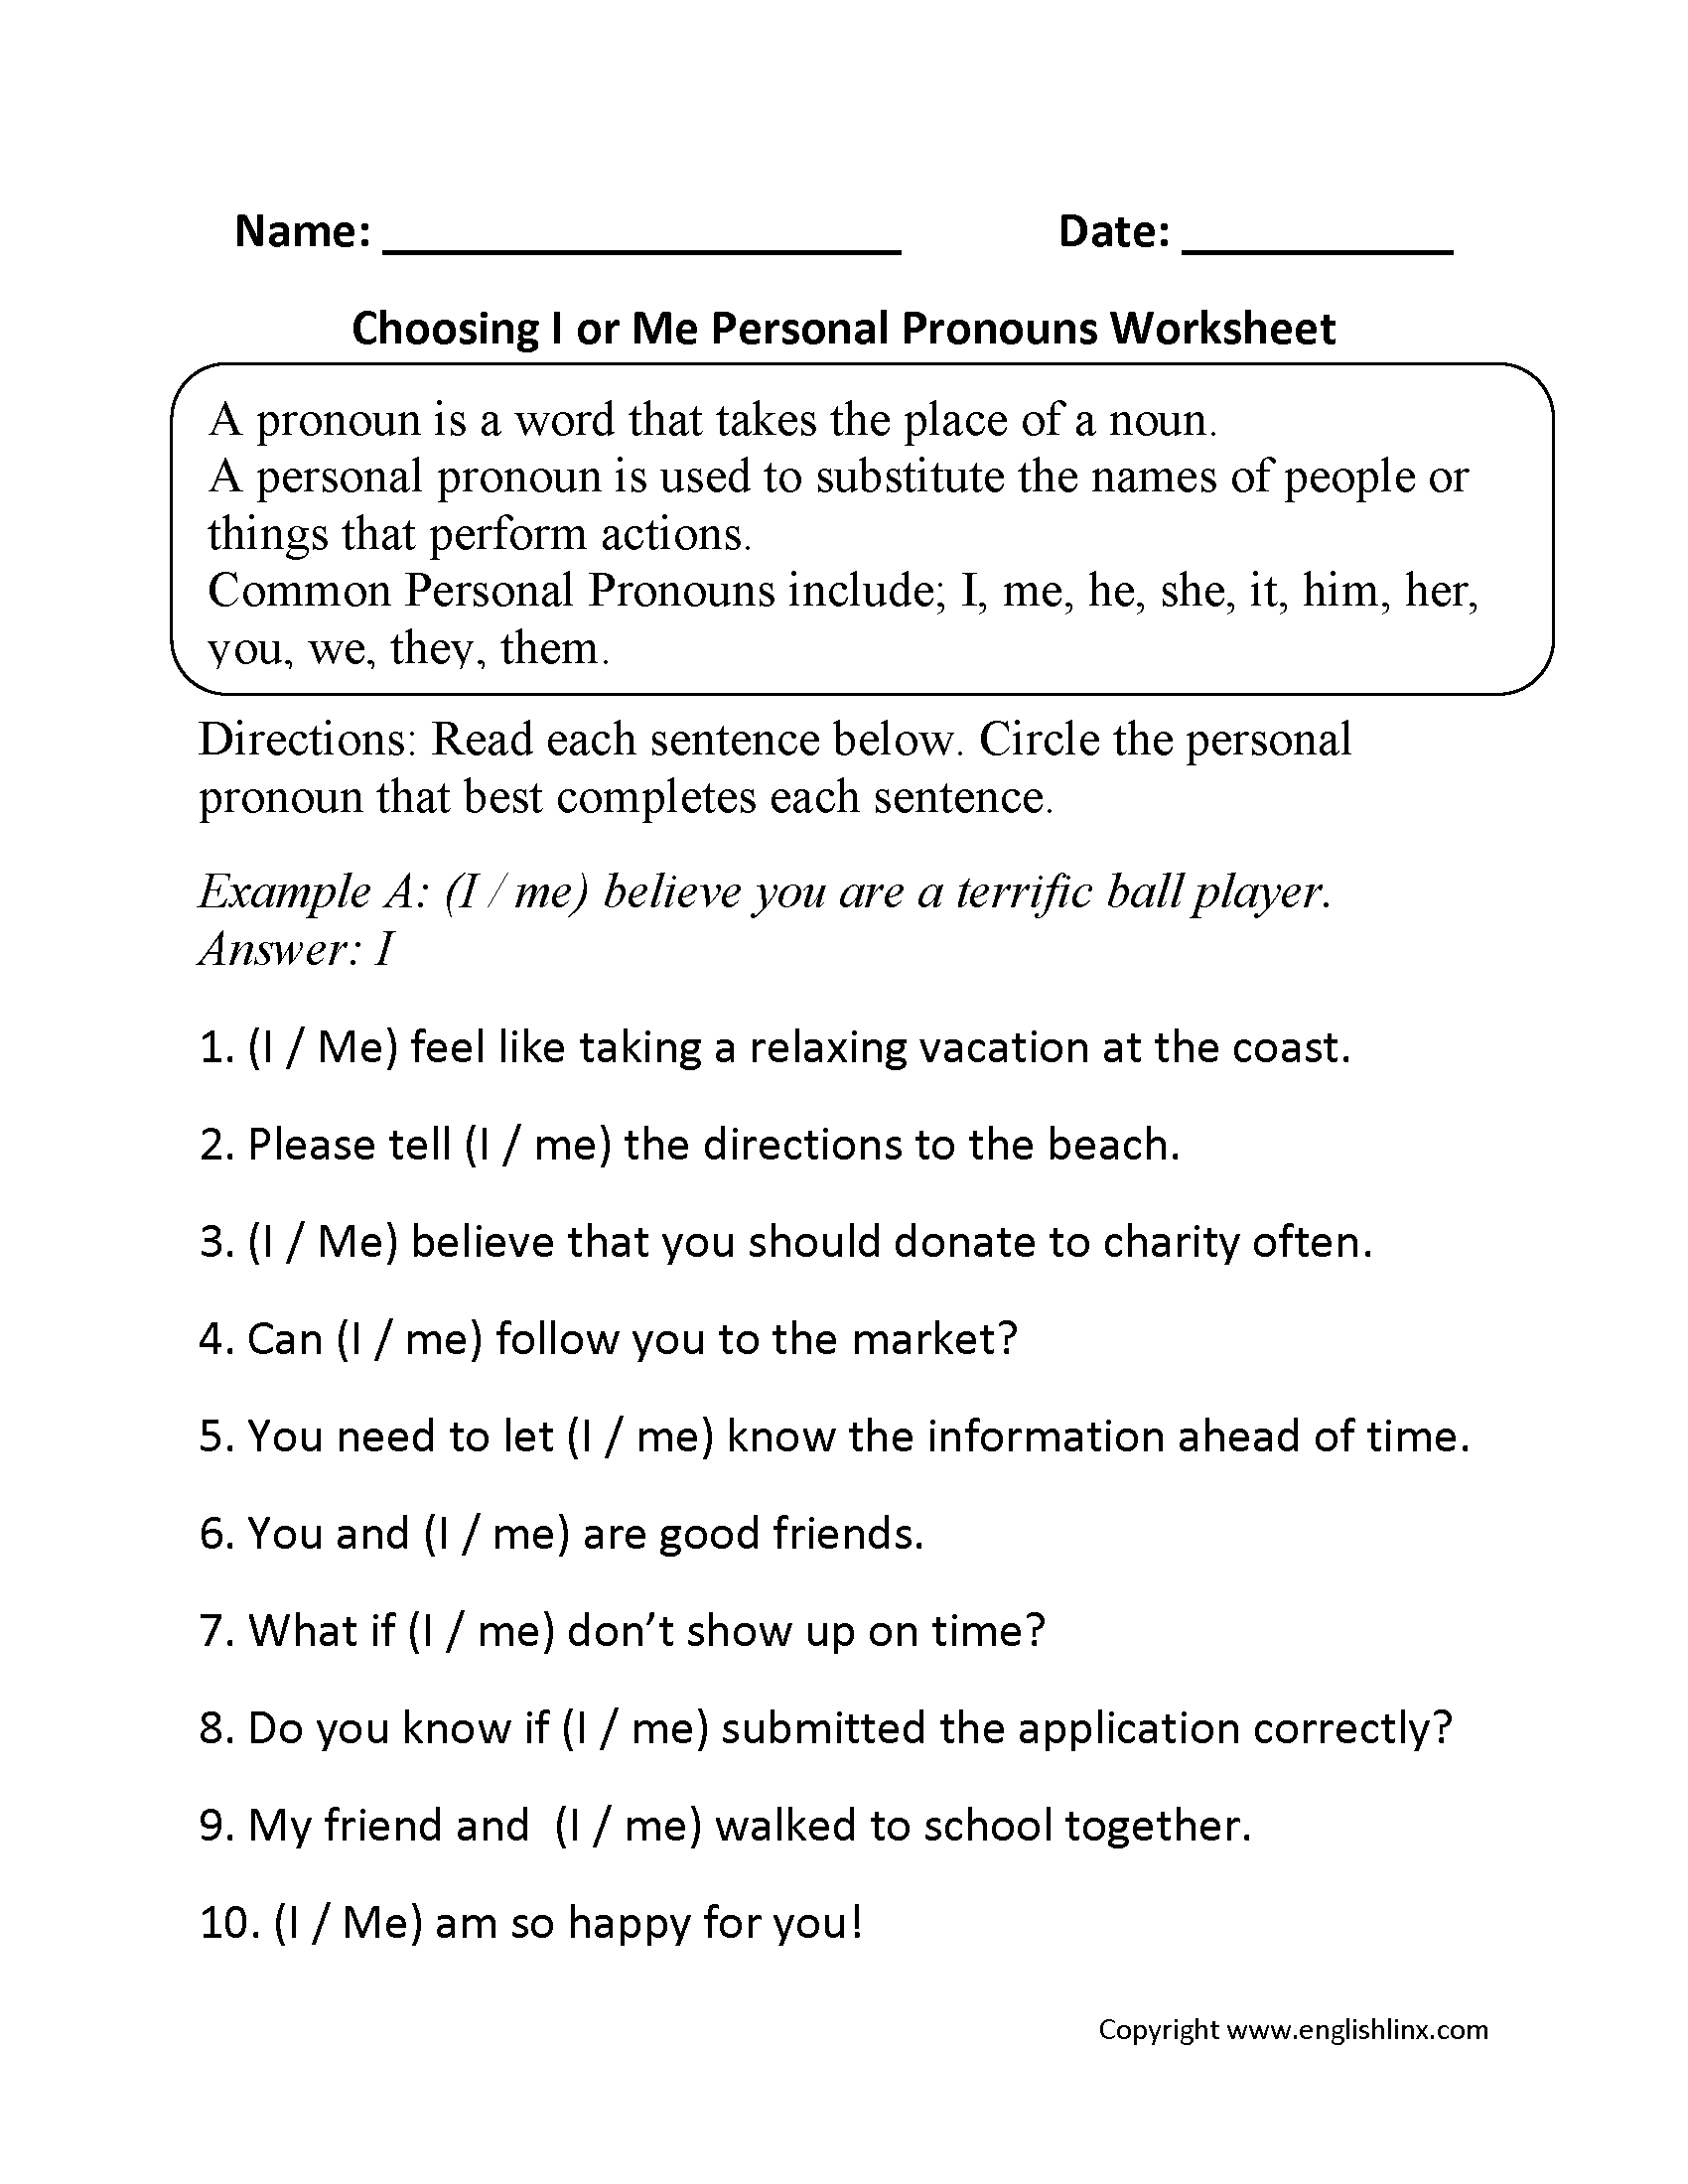 I and Me Personal Pronouns Worksheets Part 1 Beginner   Pronoun worksheets [ 2200 x 1700 Pixel ]